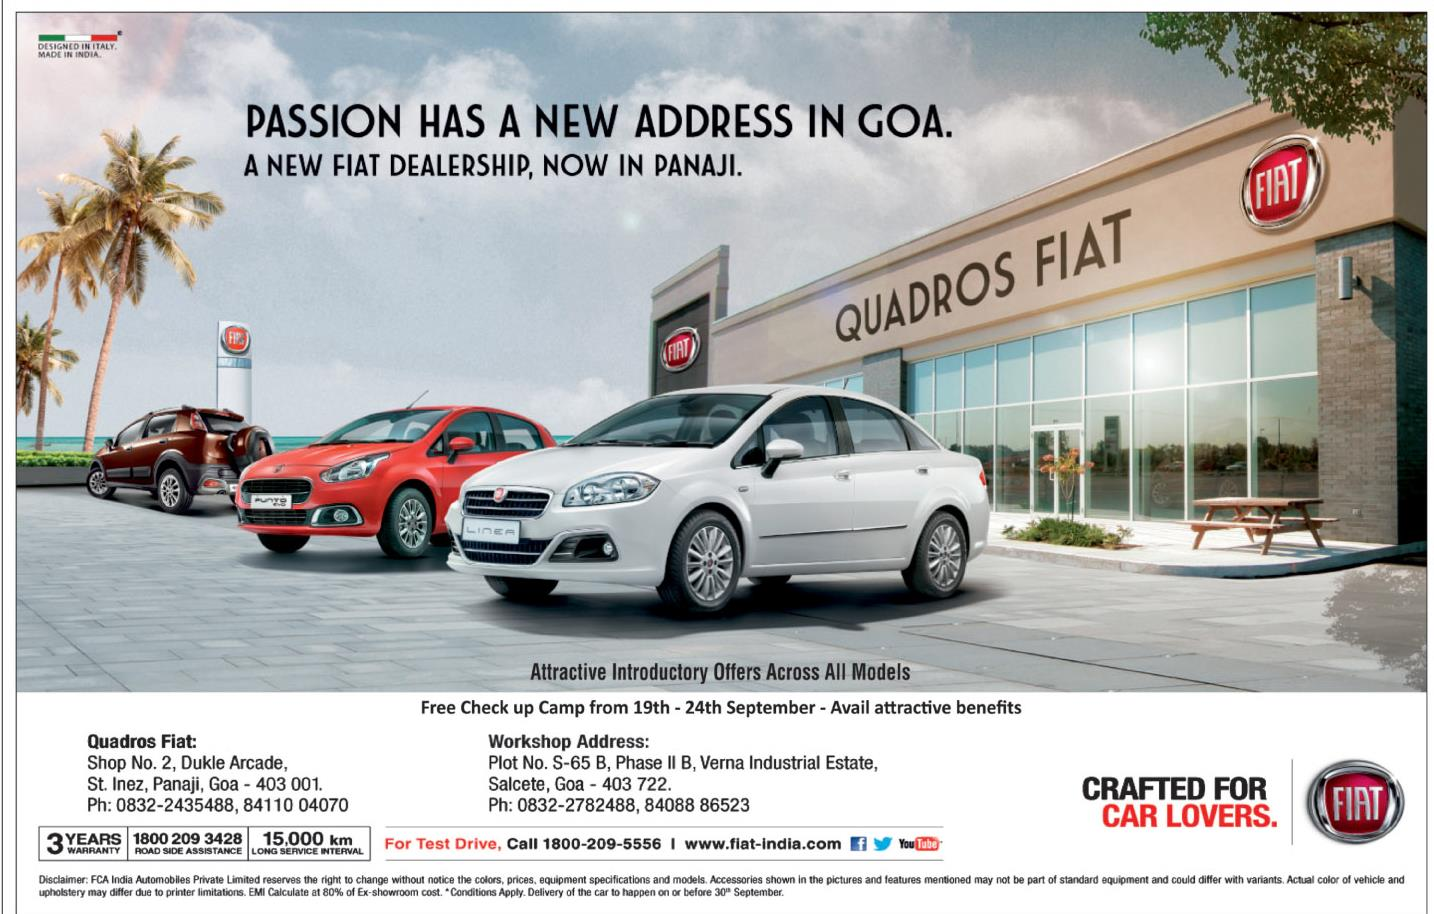 pure carousel india mobile limited fiat punto automobiles vehicles